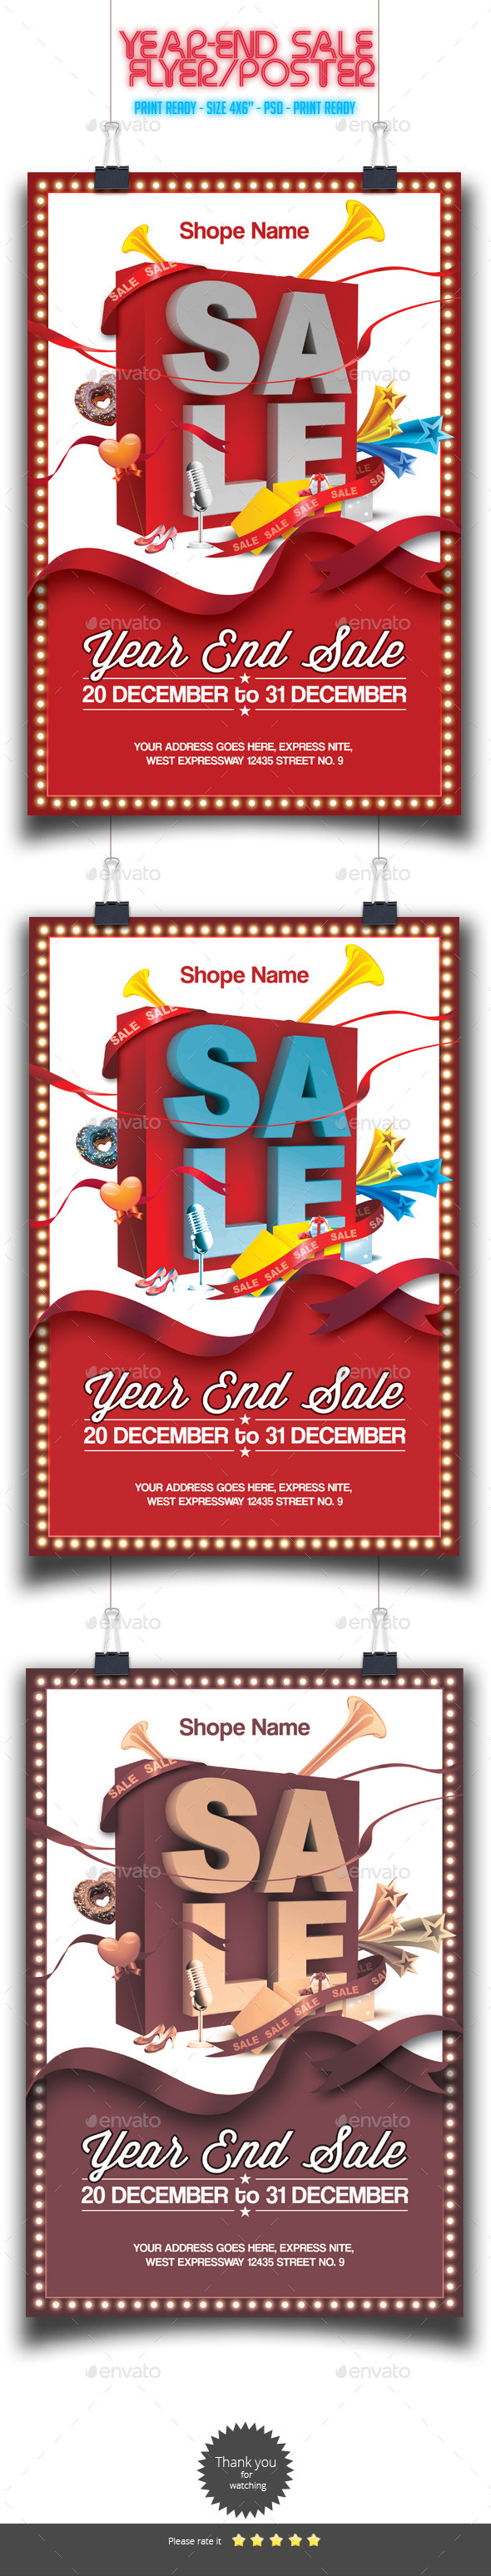 GraphicRiver Year-End Sale Flyer Poster 9255879